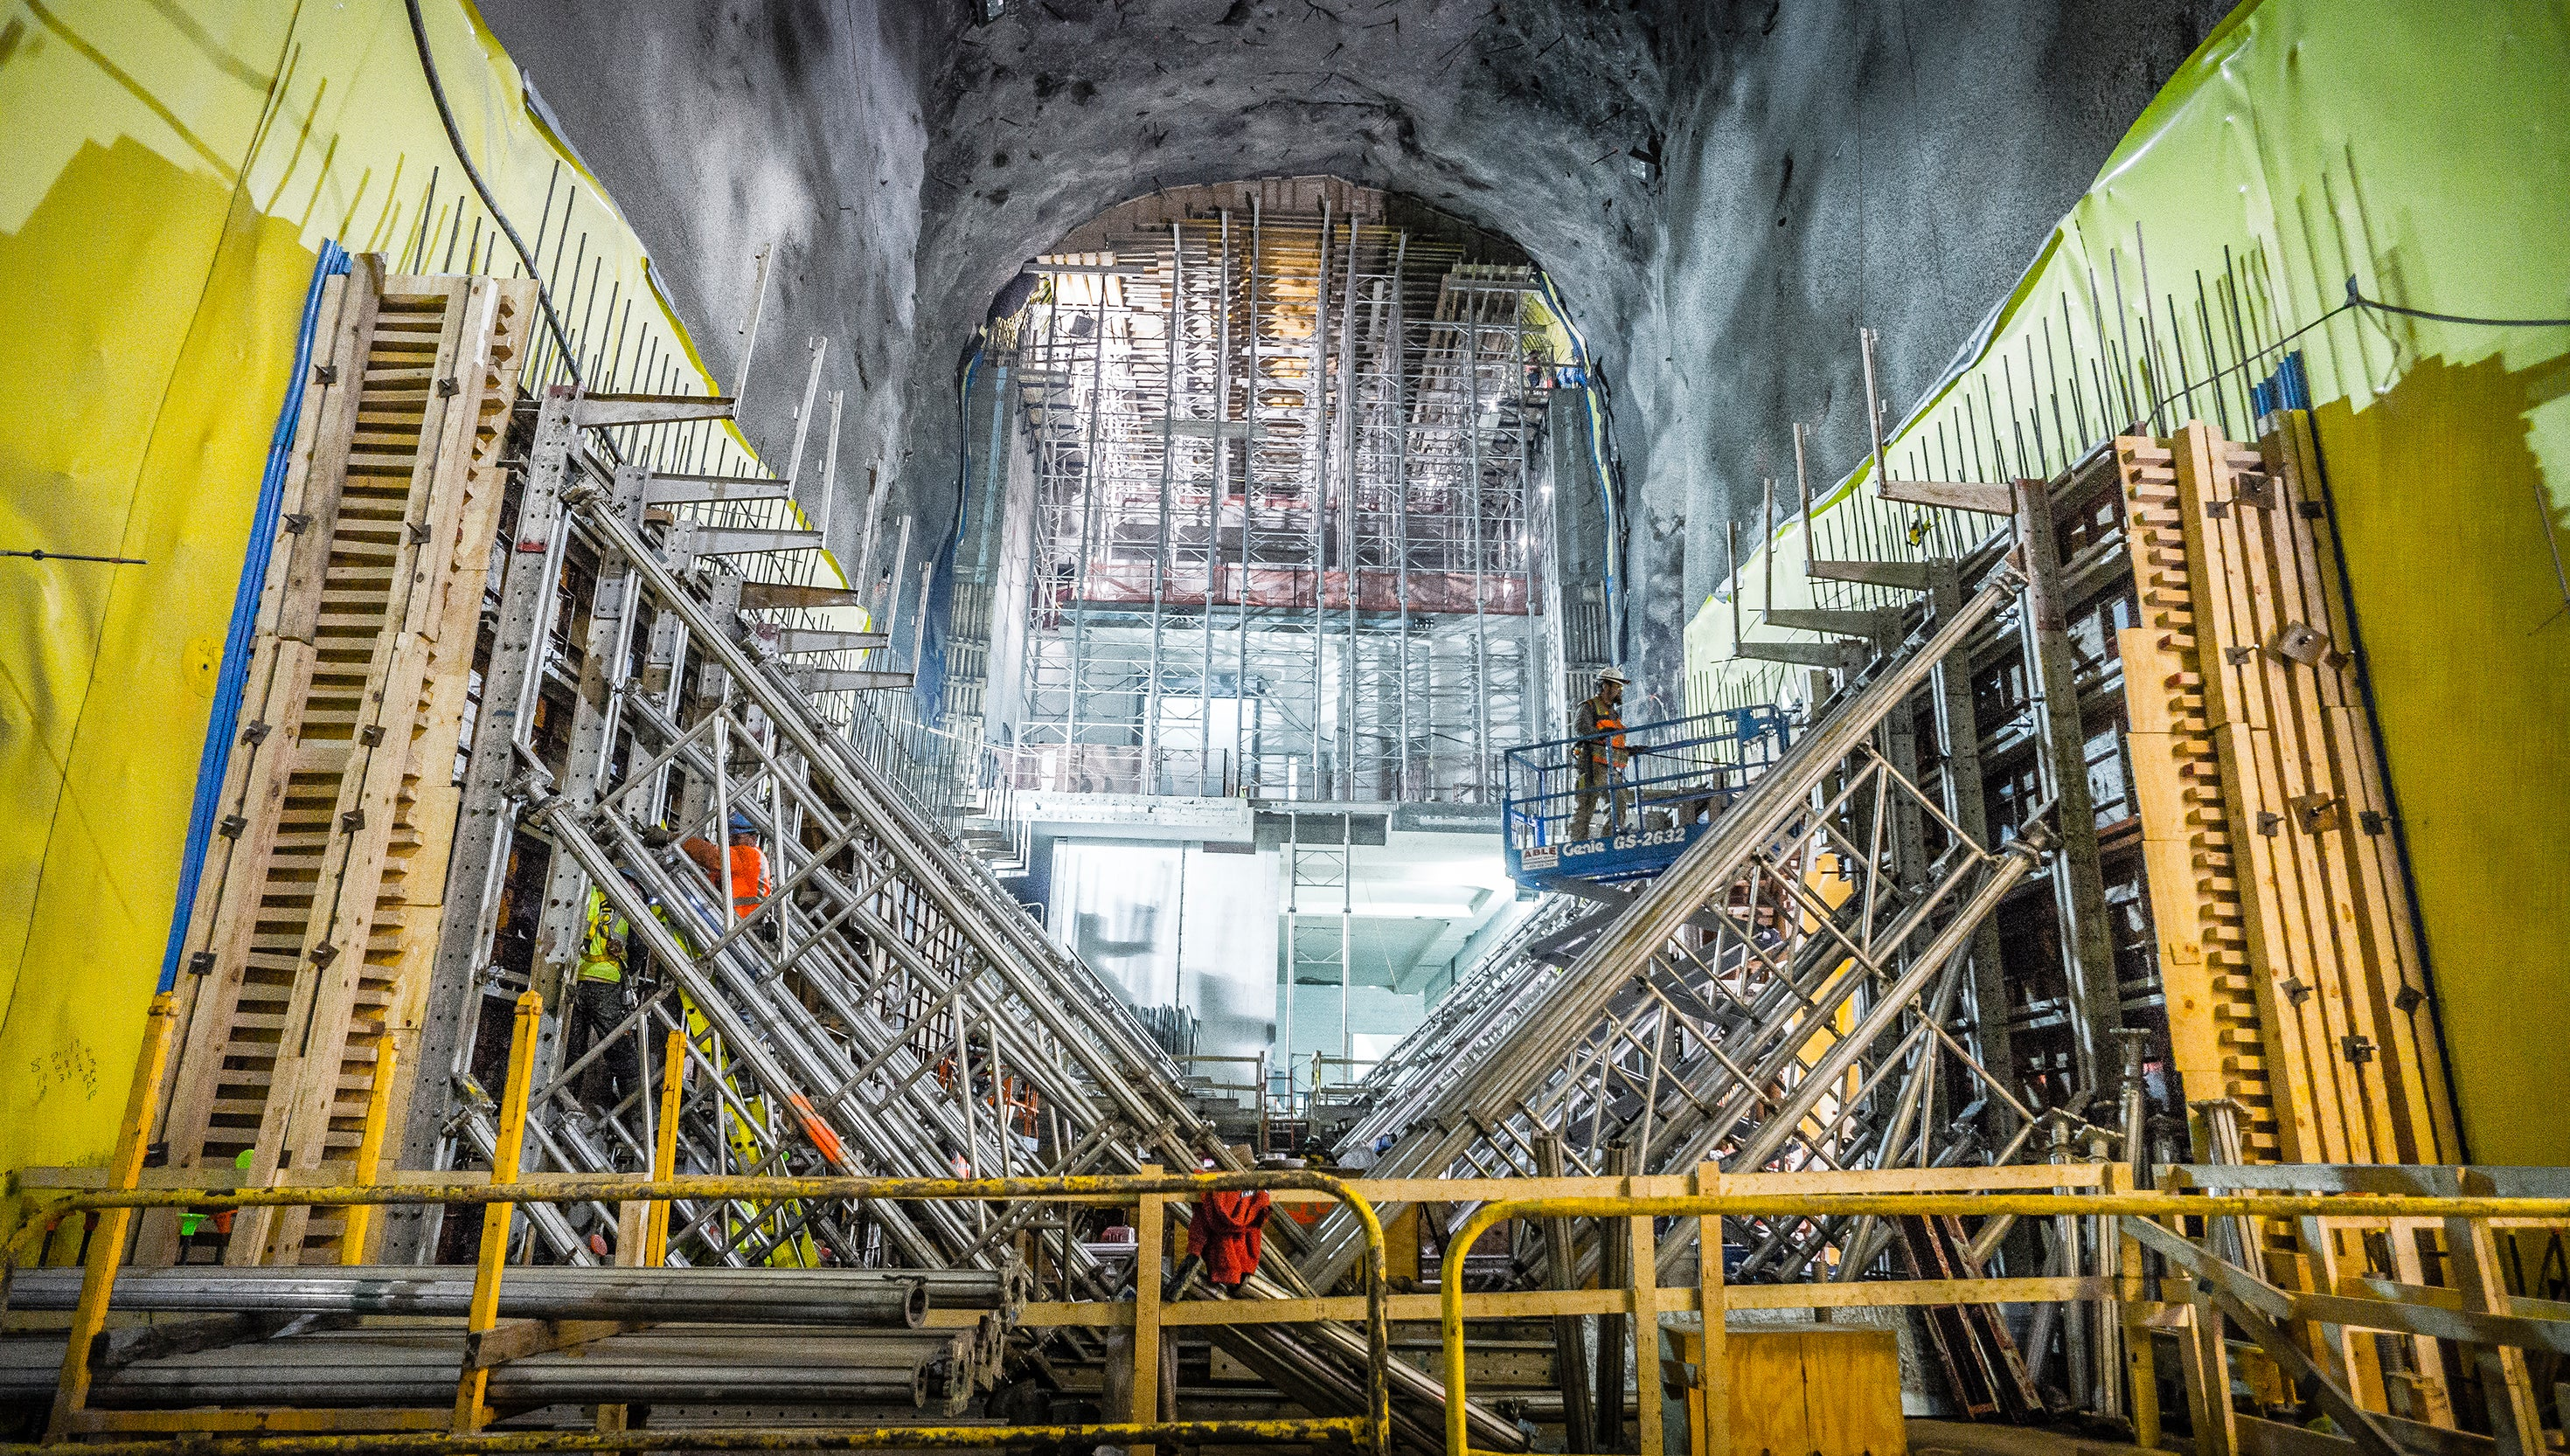 A New Glimpse Into the Gigantic Construction Project Hidden Below NYC